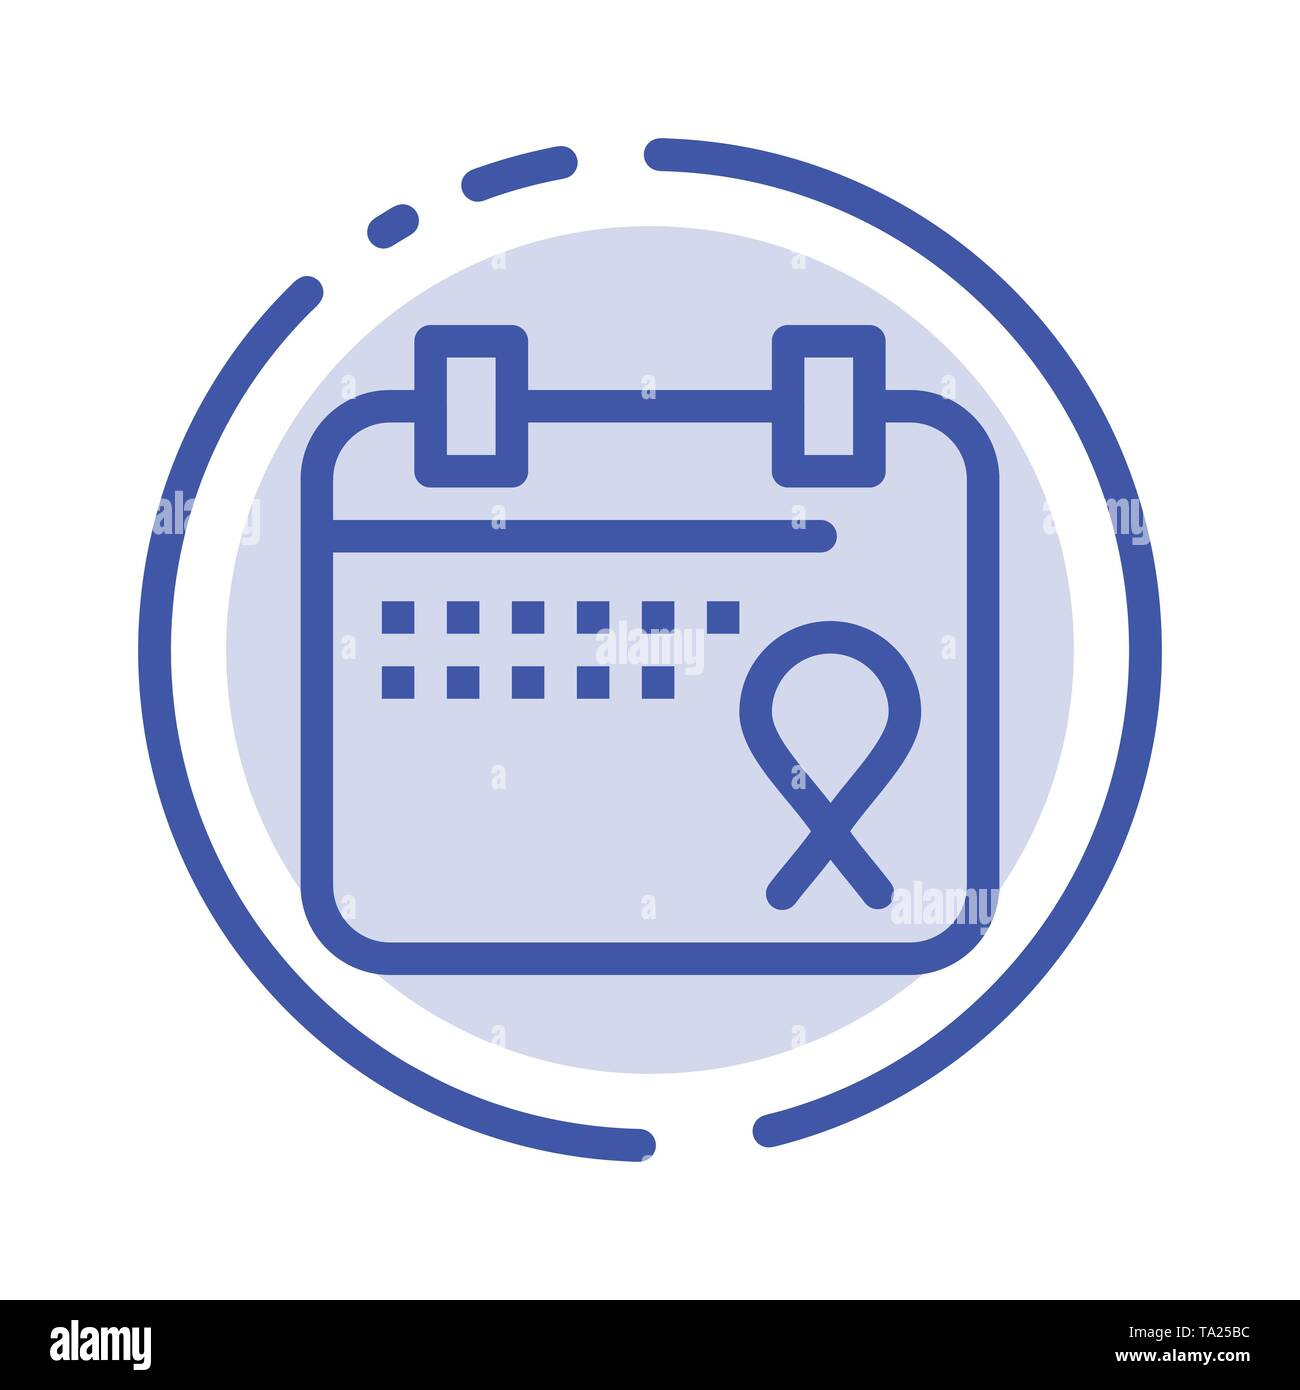 Calendar, Love, Operation, Date Blue Dotted Line Line Icon - Stock Image